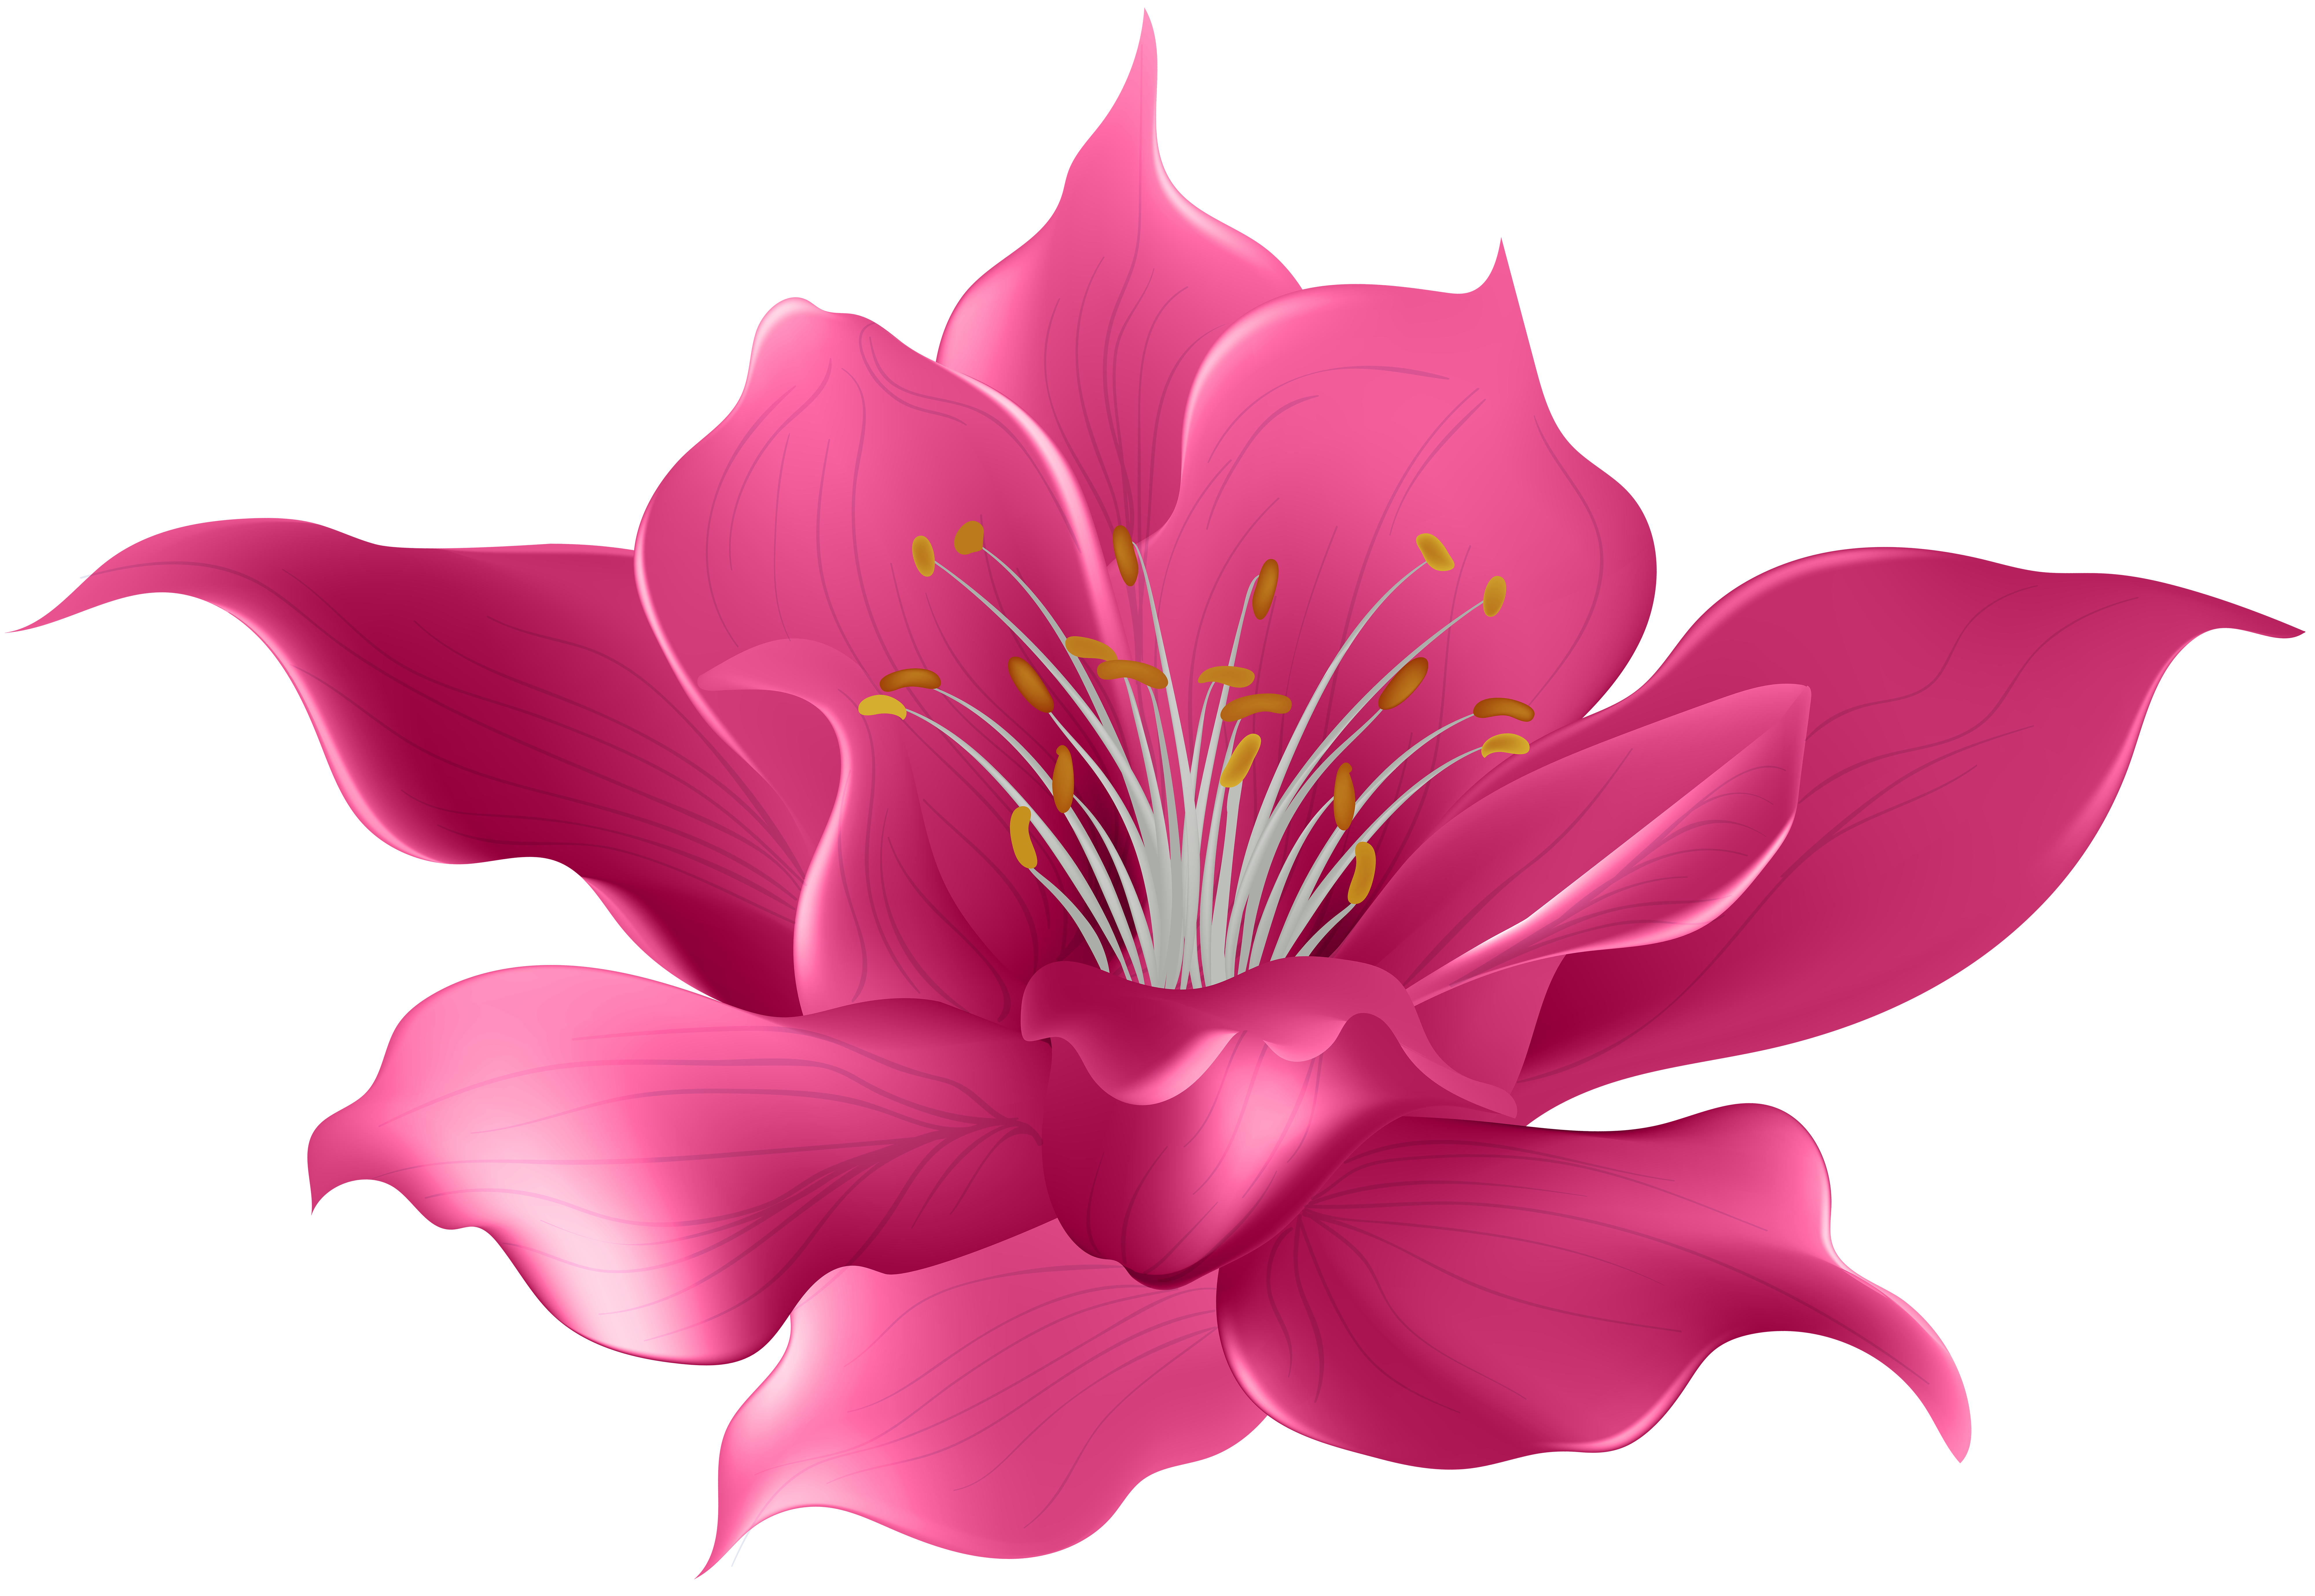 Drawing violet clip art. Magnolia flower png